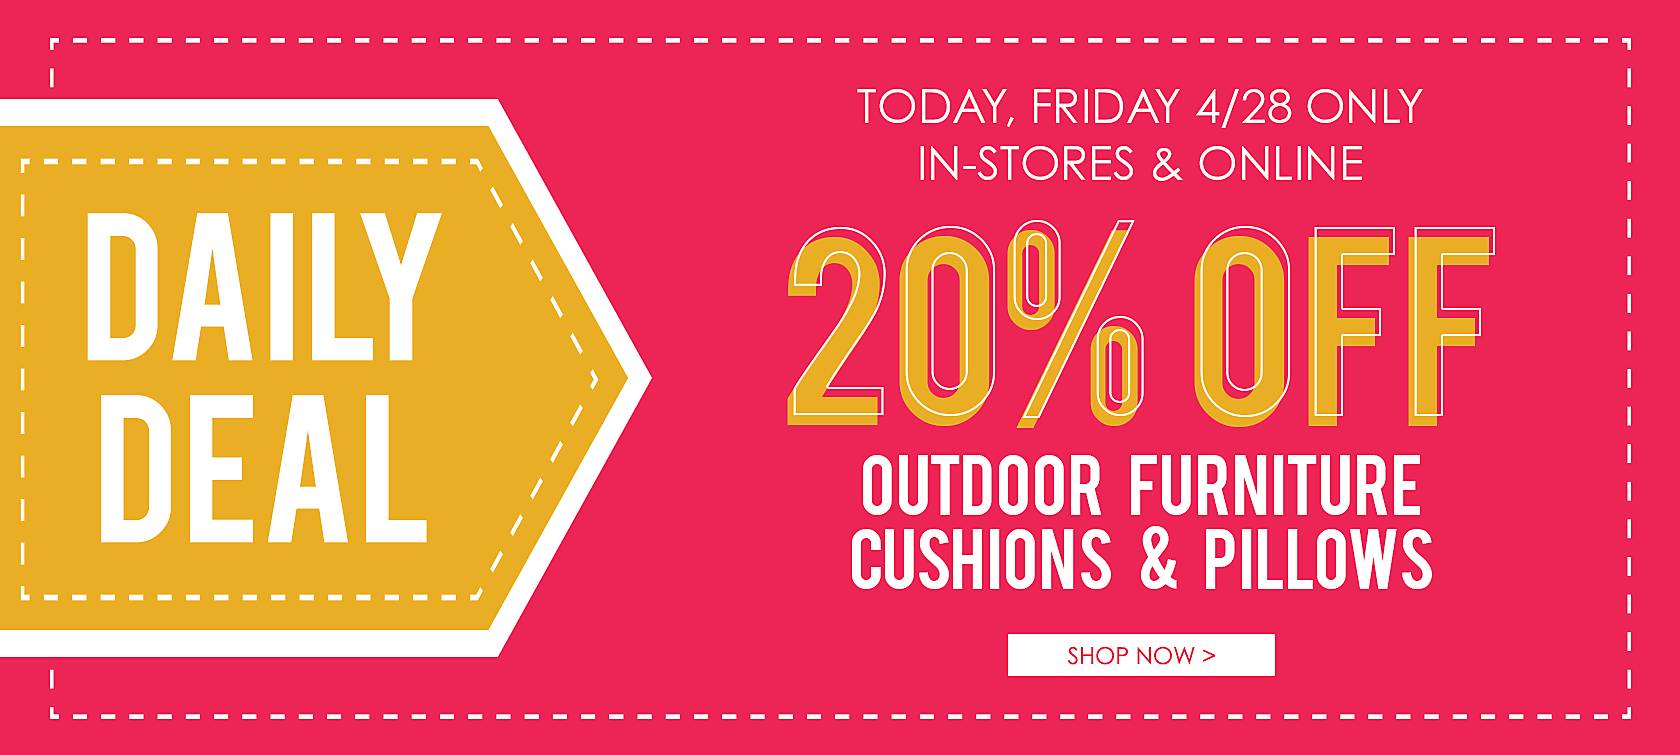 20% Off Outdoor Furniture, Cushions, & Pillows - Shop Now